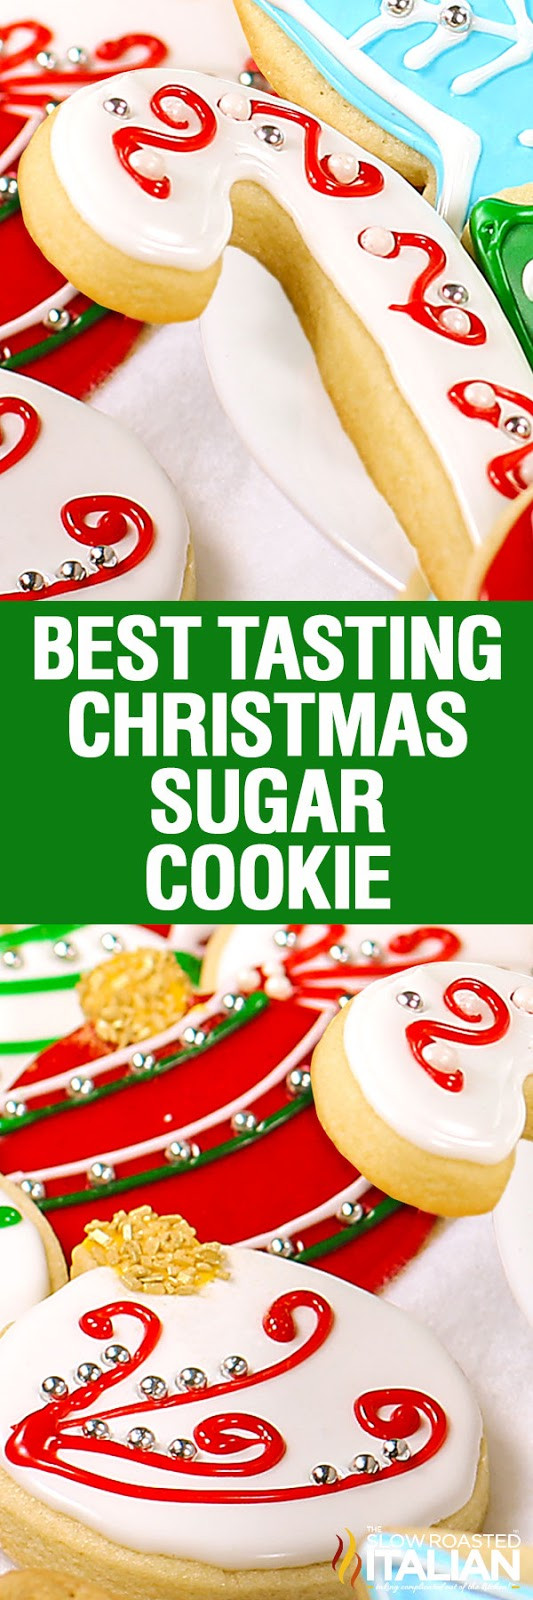 Best Christmas Cutout Cookies  Christmas Sugar Cookies With NEW VIDEO